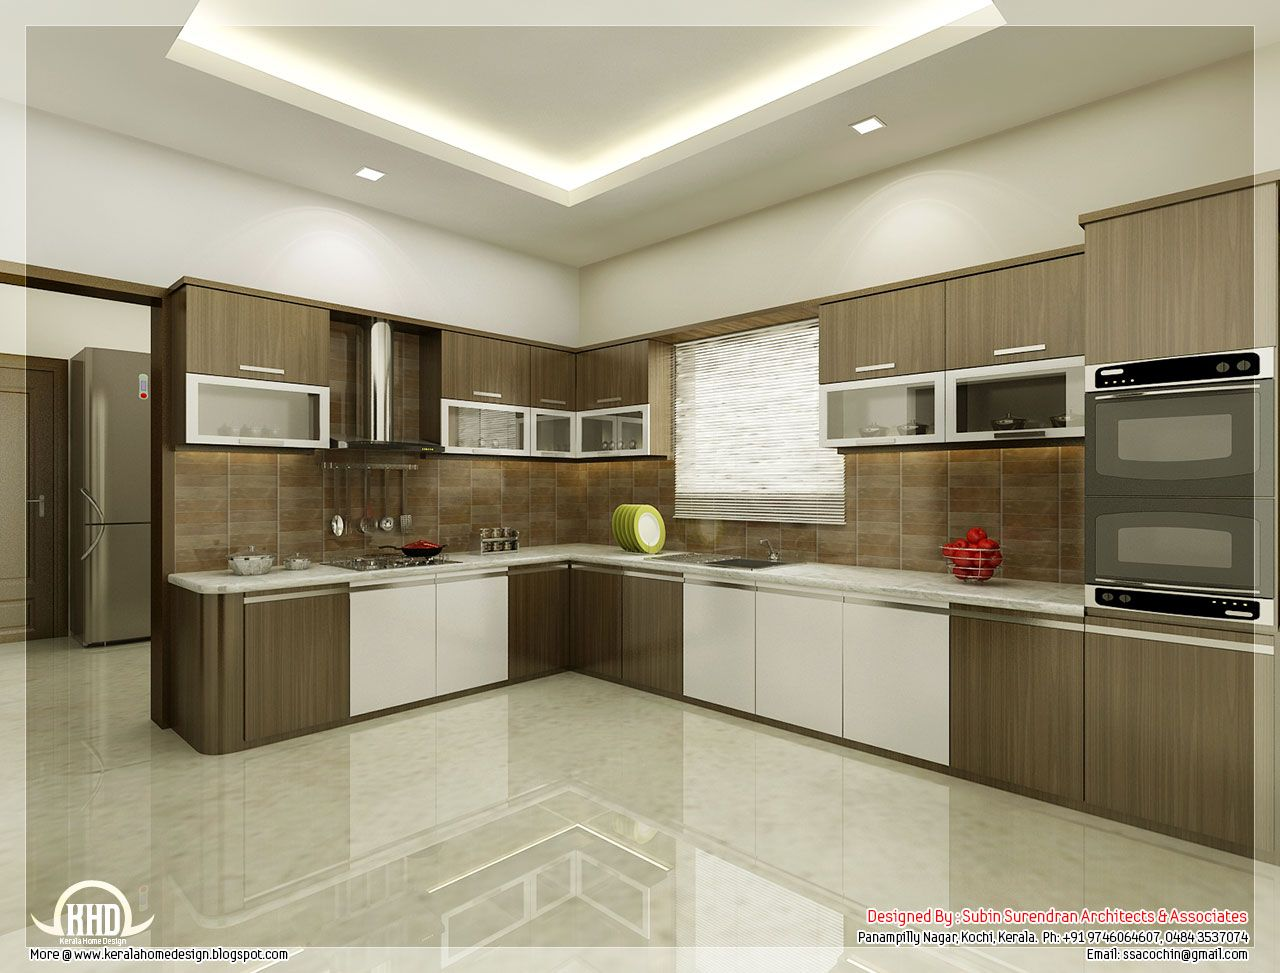 Interior Design Kitchen Ideas interior design kitchen ideas Kitchen Dining Interiors Kerala Home Design Floor Plans Home Luxury Modern Home Interior Design Haynes House